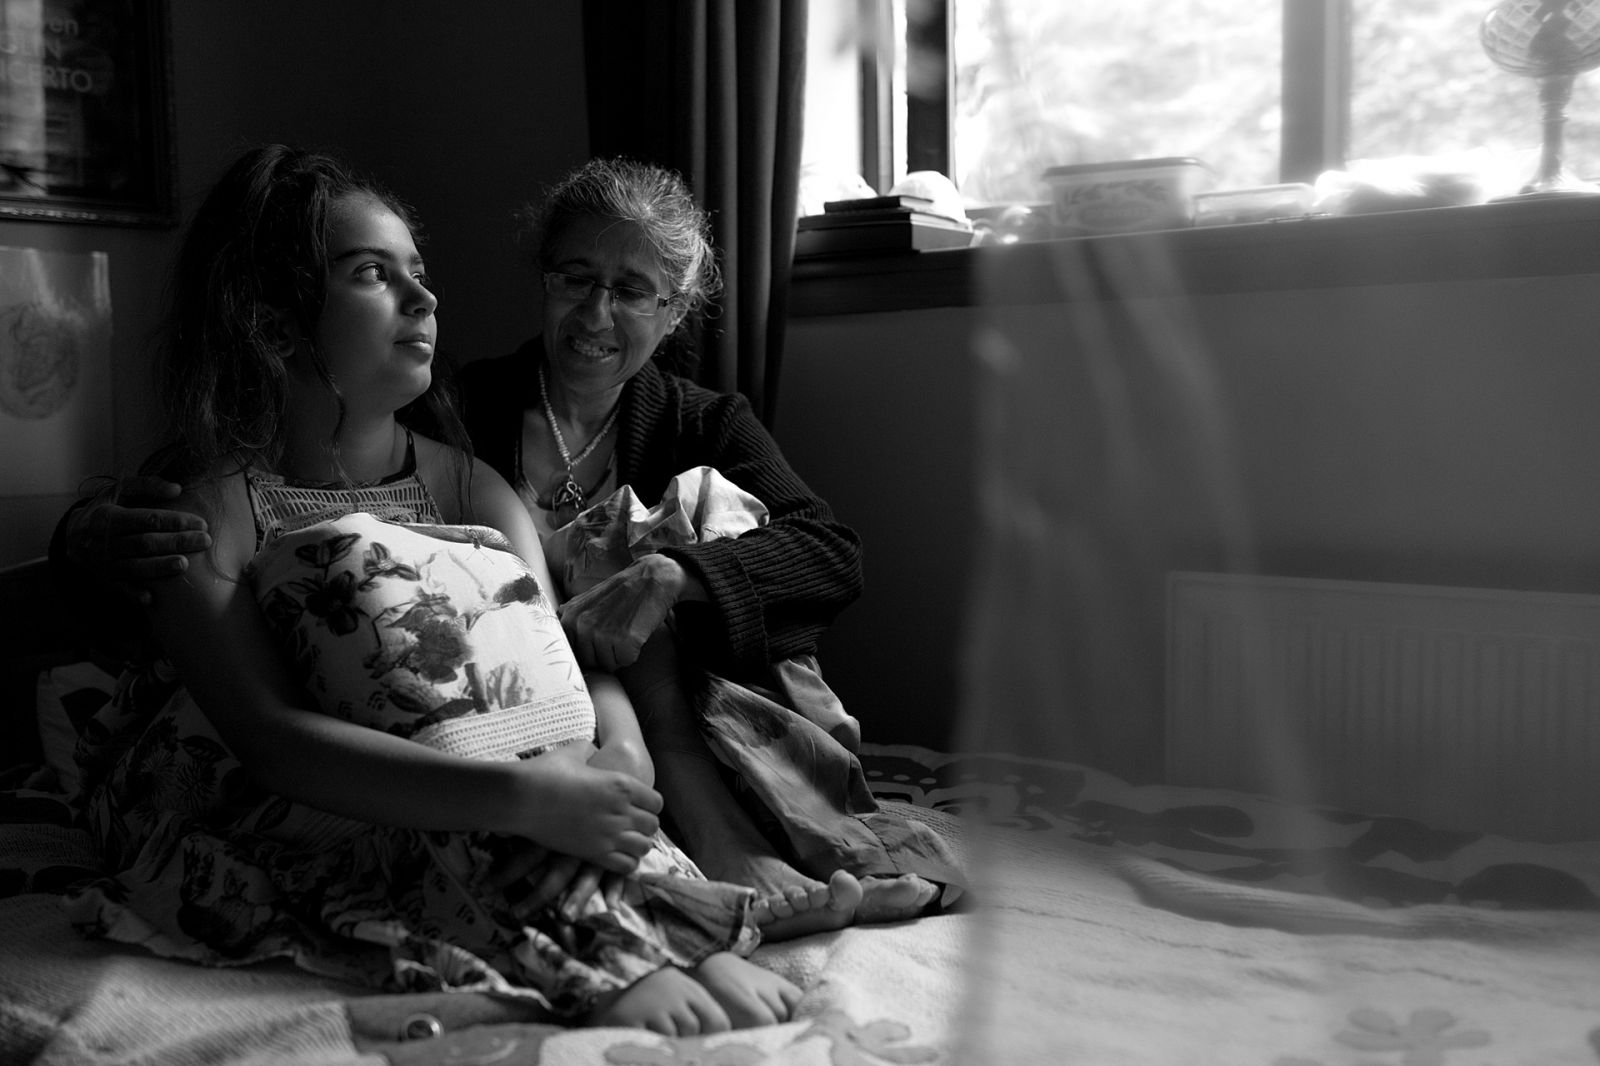 Mother and daughter cuddled in on the childs bed under the window